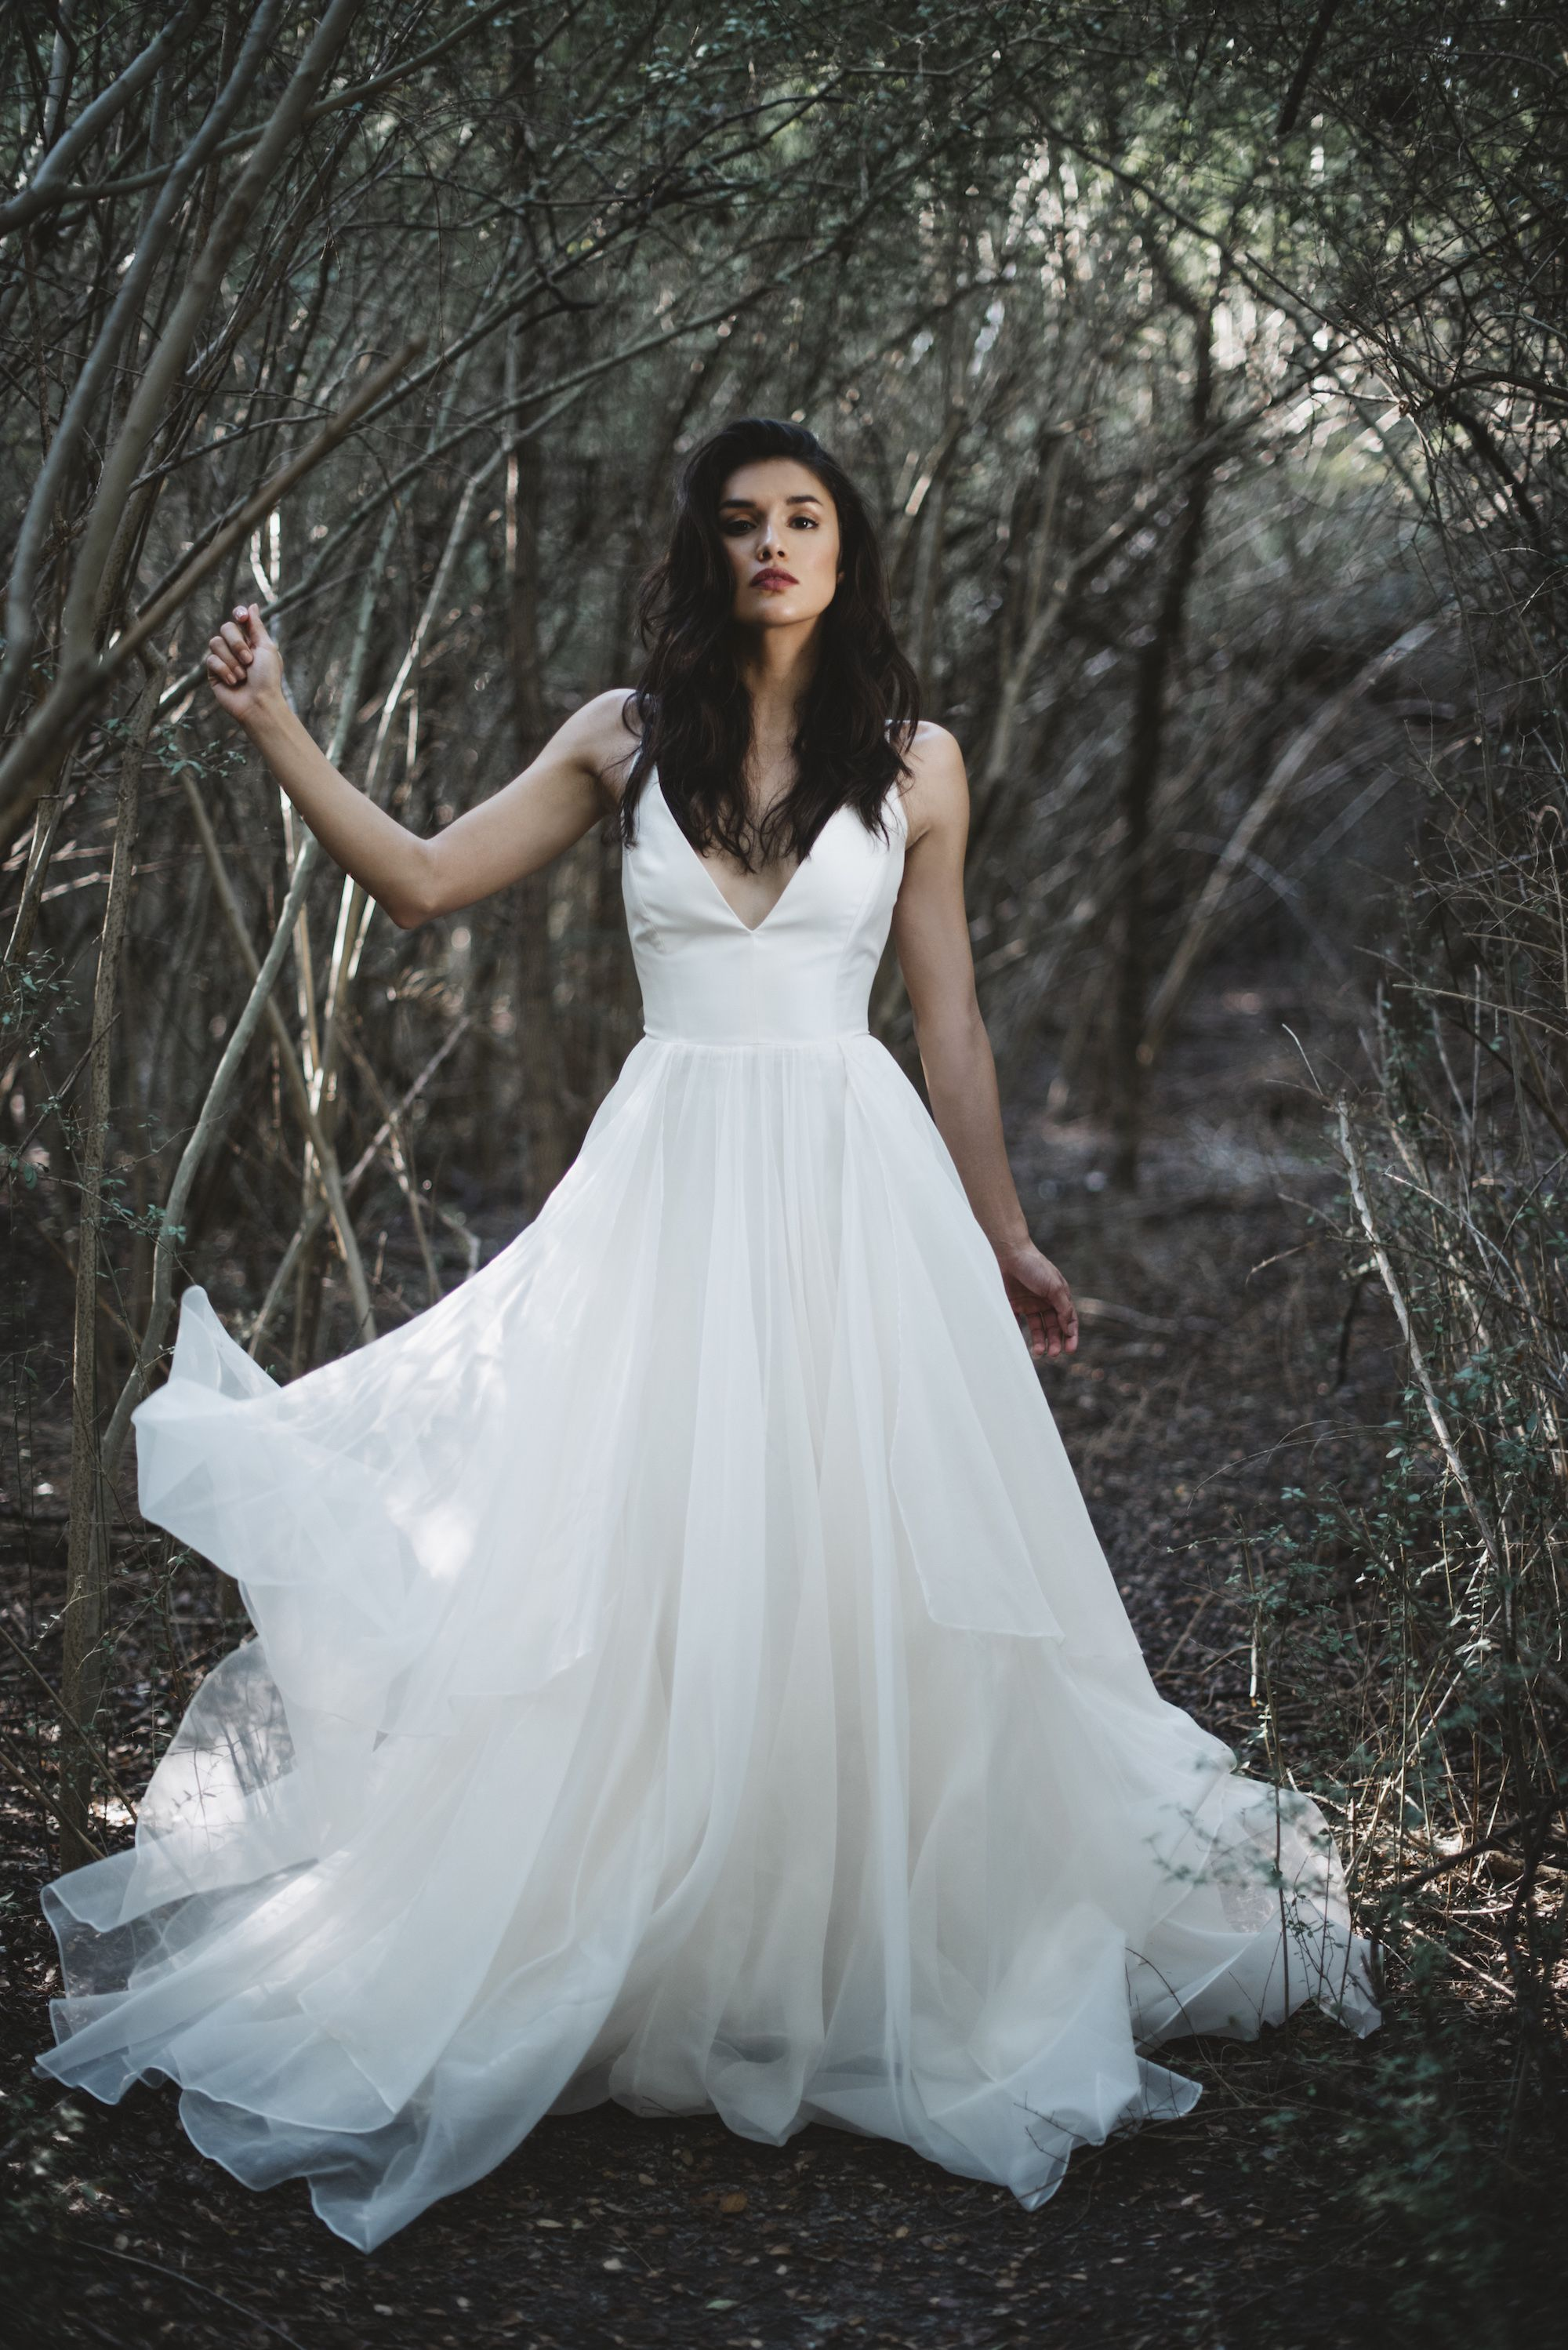 Leanne Marshall S Sophisticated Designs Are Known For Their Light Flowing Lines Feminine Details An With Images Wedding Dresses Wedding Dresses Lace A Line Wedding Dress